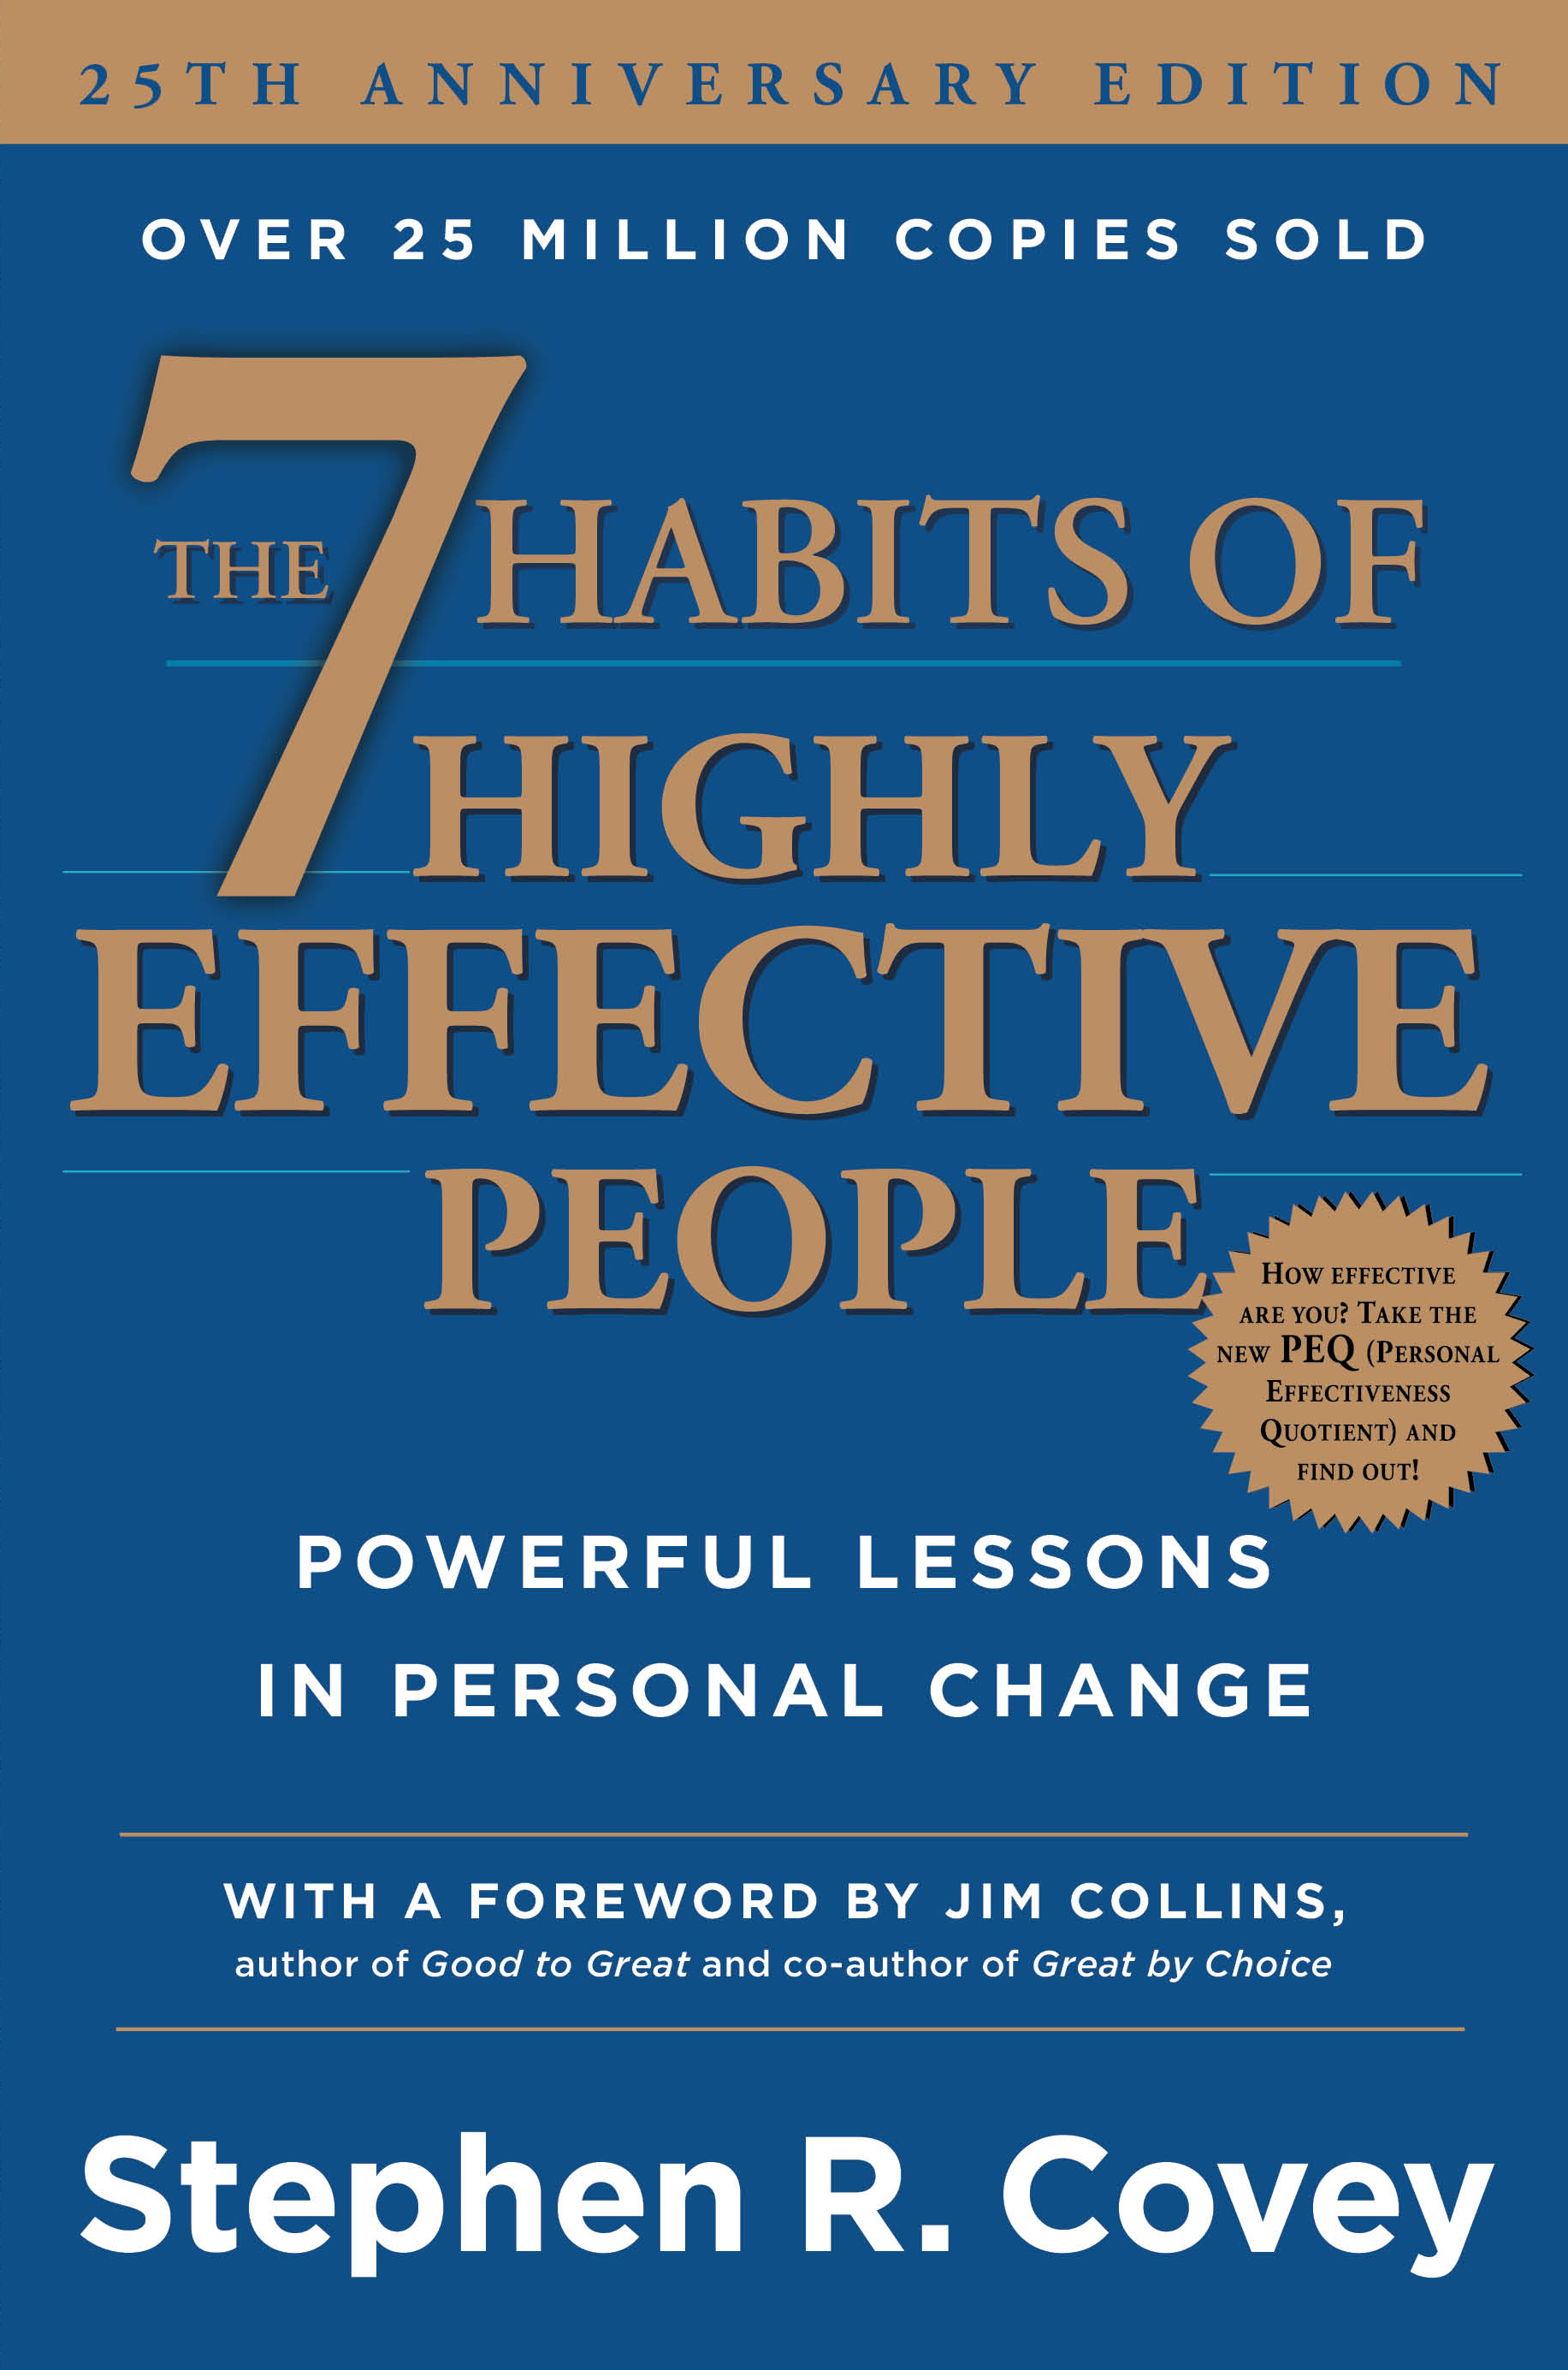 7-habits-highly-effective-people-book-cover